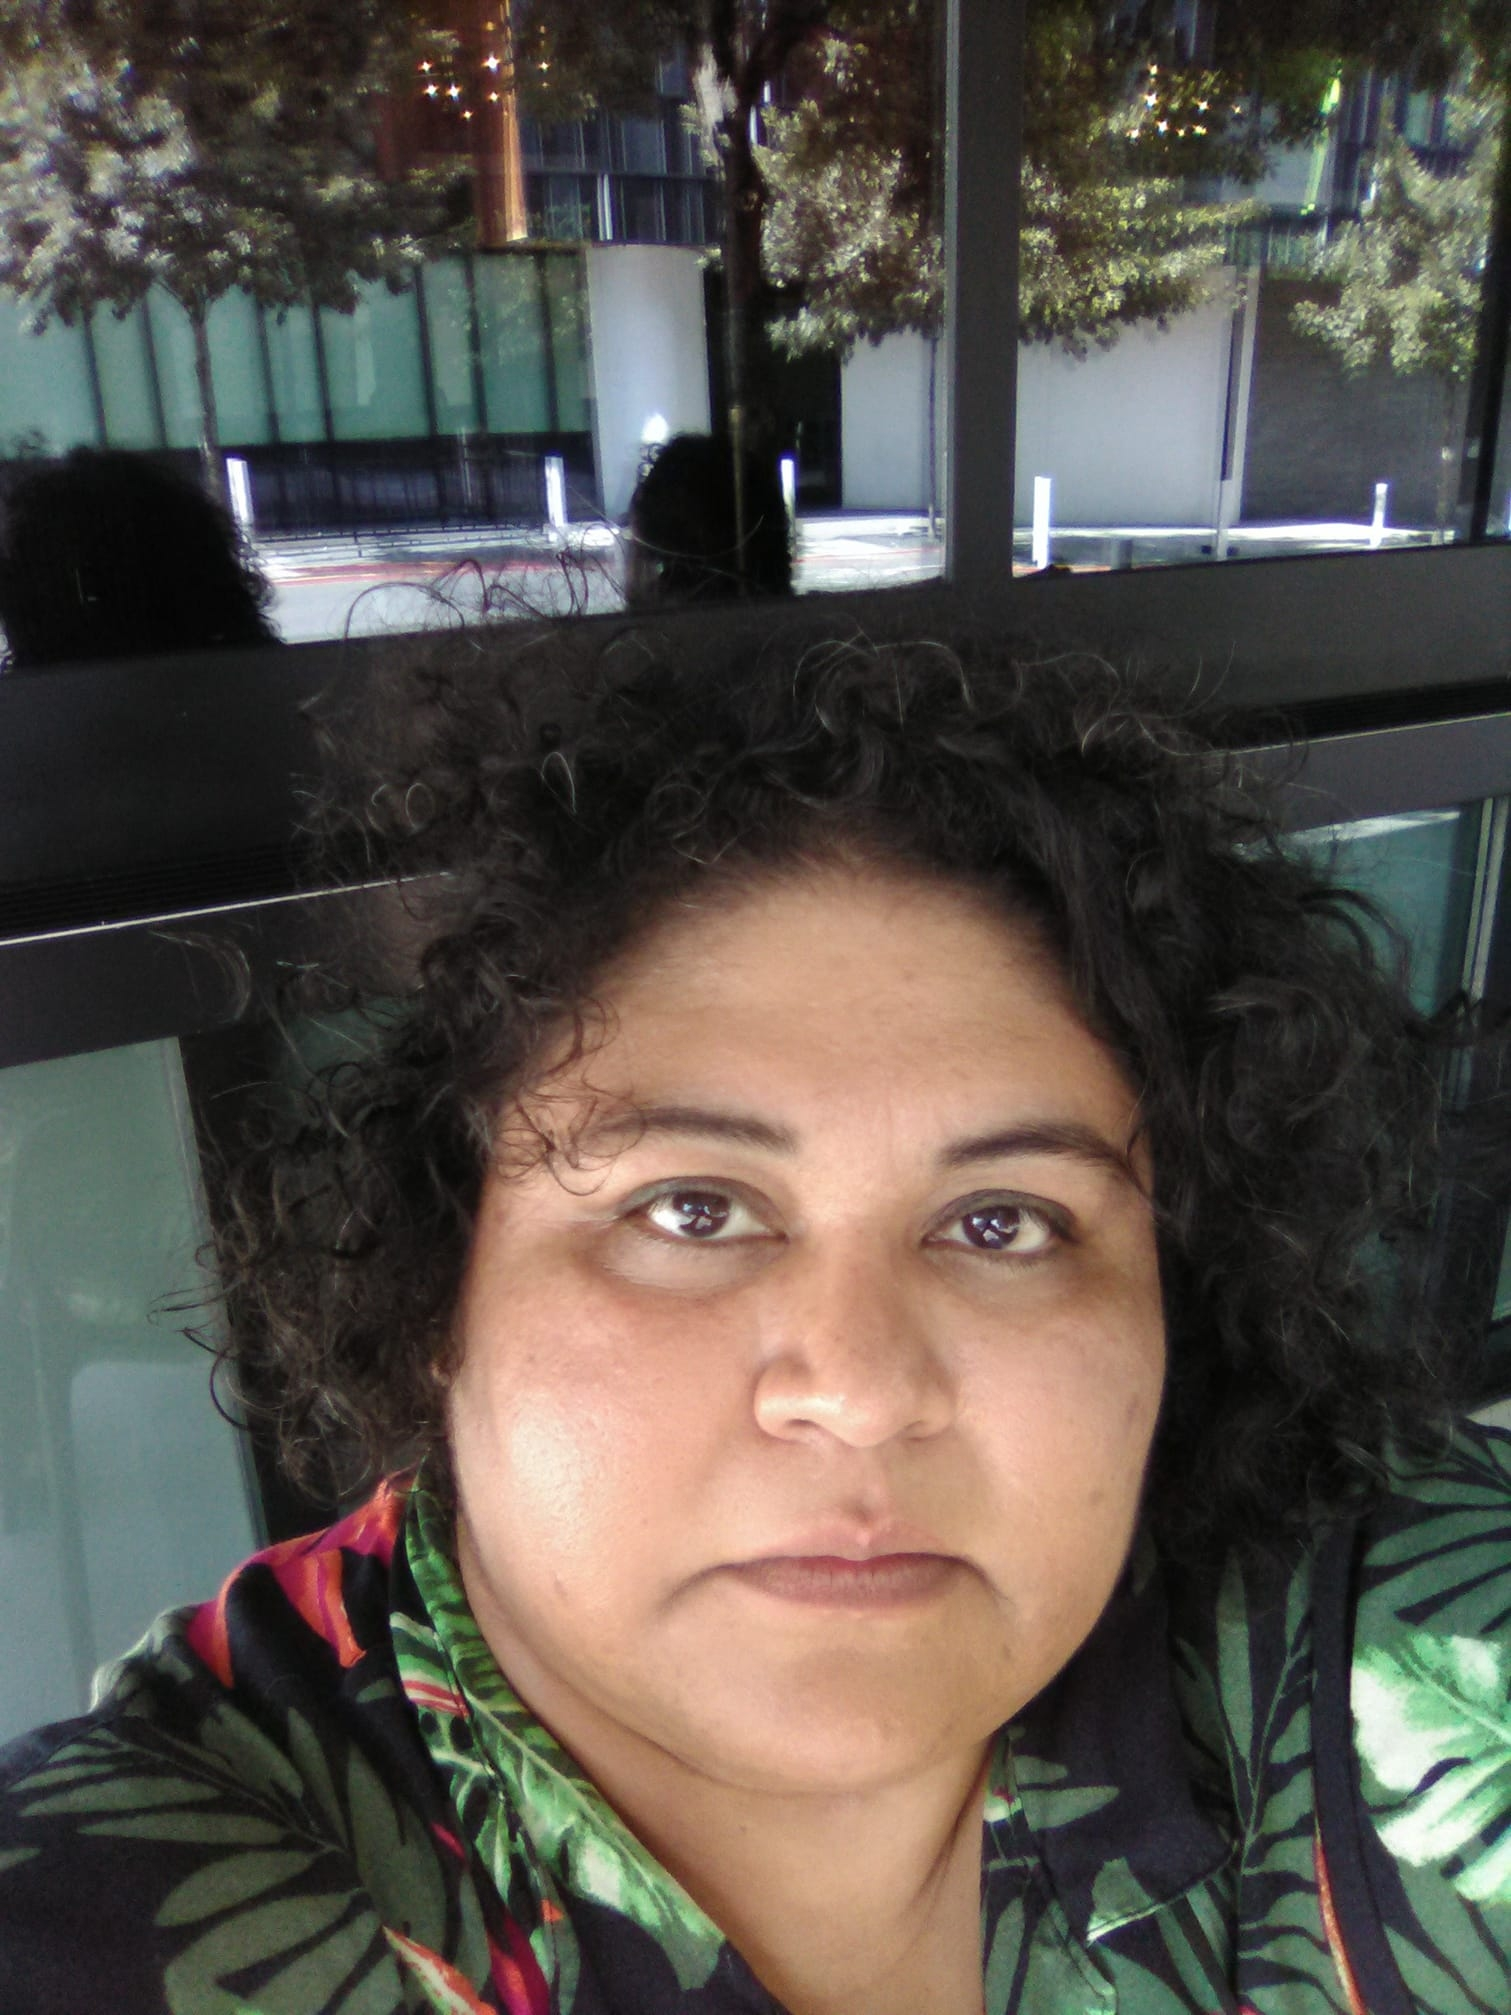 - ire'ne lara silva is the author of two poetry collections, furia (Mouthfeel Press, 2010) and Blood Sugar Canto (Saddle Road Press, 2016), which were both finalists for the International Latino Book Award in Poetry, an e-chapbook, Enduring Azucares, (Sibling Rivalry Press, 2015), as well as a short story collection, flesh to bone (Aunt Lute Books, 2013) which won the Premio Aztlán. She and poet Dan Vera are also the co-editors of Imaniman: Poets Writing in the Anzaldúan Borderlands, (Aunt Lute Books, 2017), a collection of poetry and essays. ire'ne is the recipient of a 2017 NALAC Fund for the Arts Grant, the final recipient of the Alfredo Cisneros del Moral Award, the Fiction Finalist for AROHO's 2013 Gift of Freedom Award, and the 2008 recipient of the Gloria Anzaldúa Milagro Award. ire'ne is currently working on her first novel, Naci. Her latest collection of poetry, CUICACALLI/House of Song, will be published by Saddle Road in April 2019. Website: irenelarasilva.wordpress.com